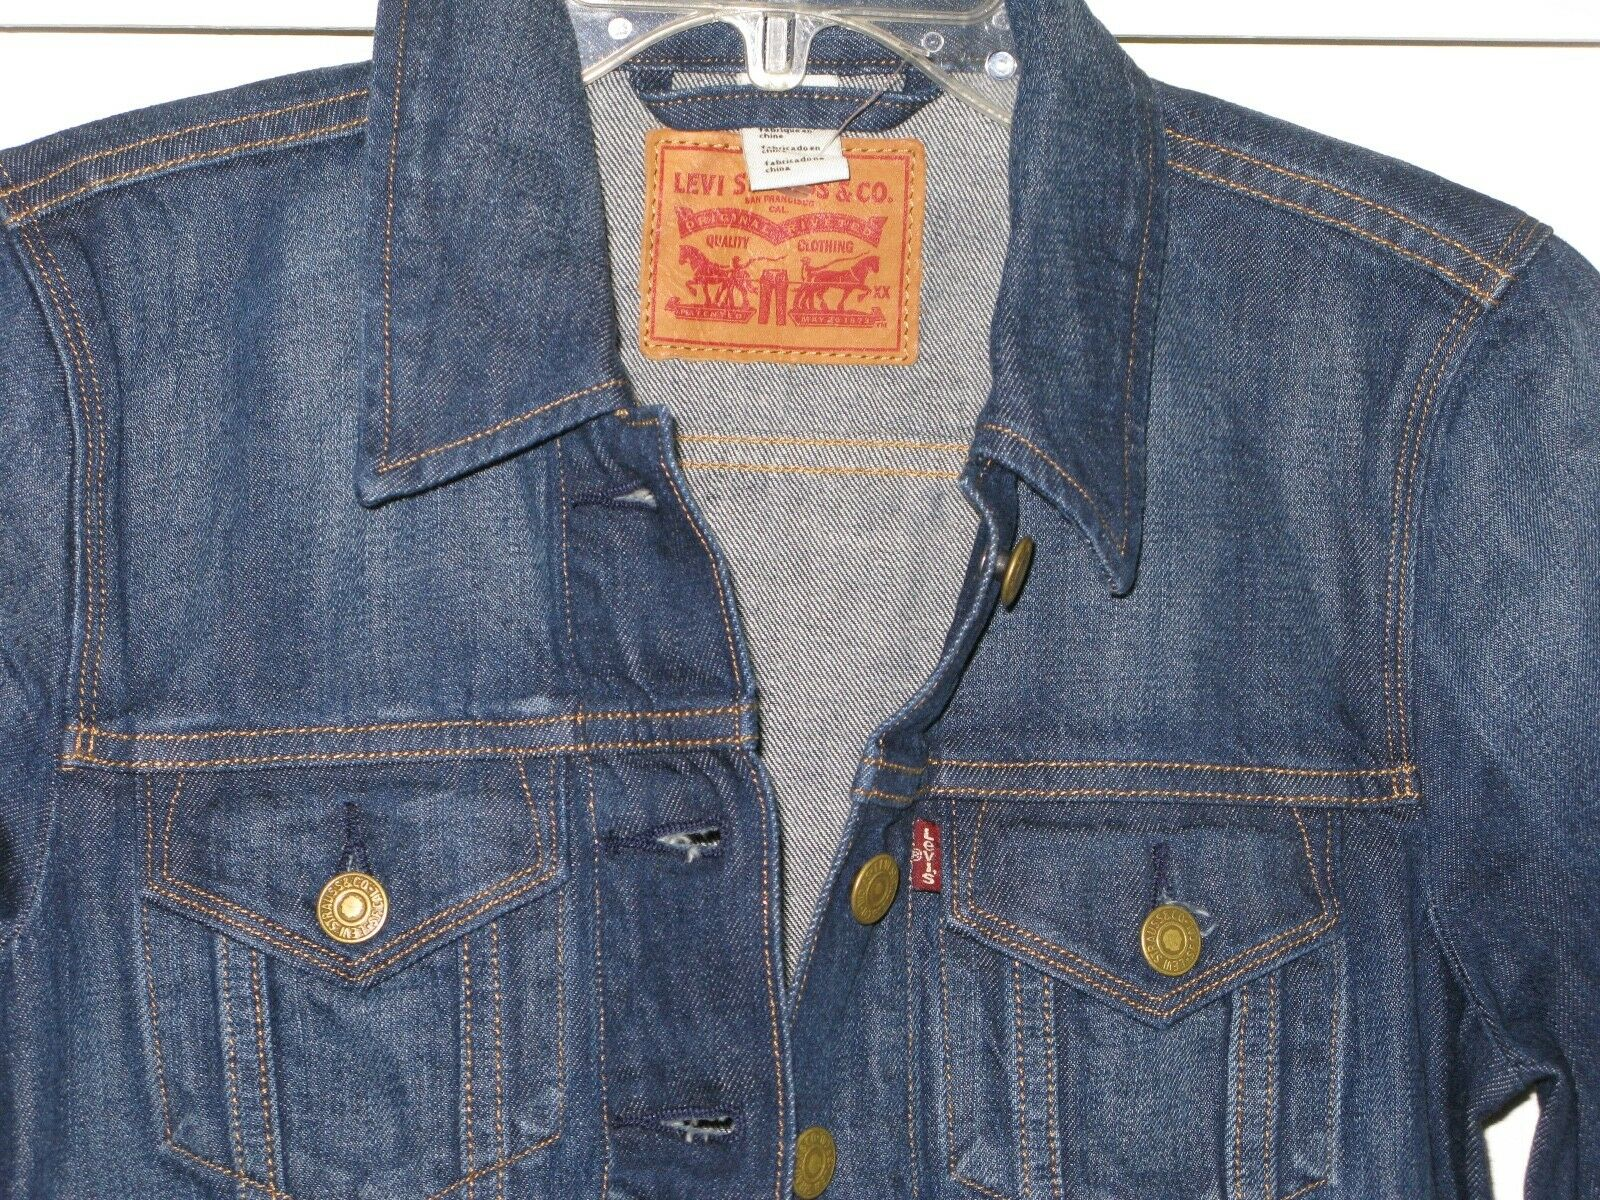 Levi's Trucker Denim Jacket women's XS Icon New